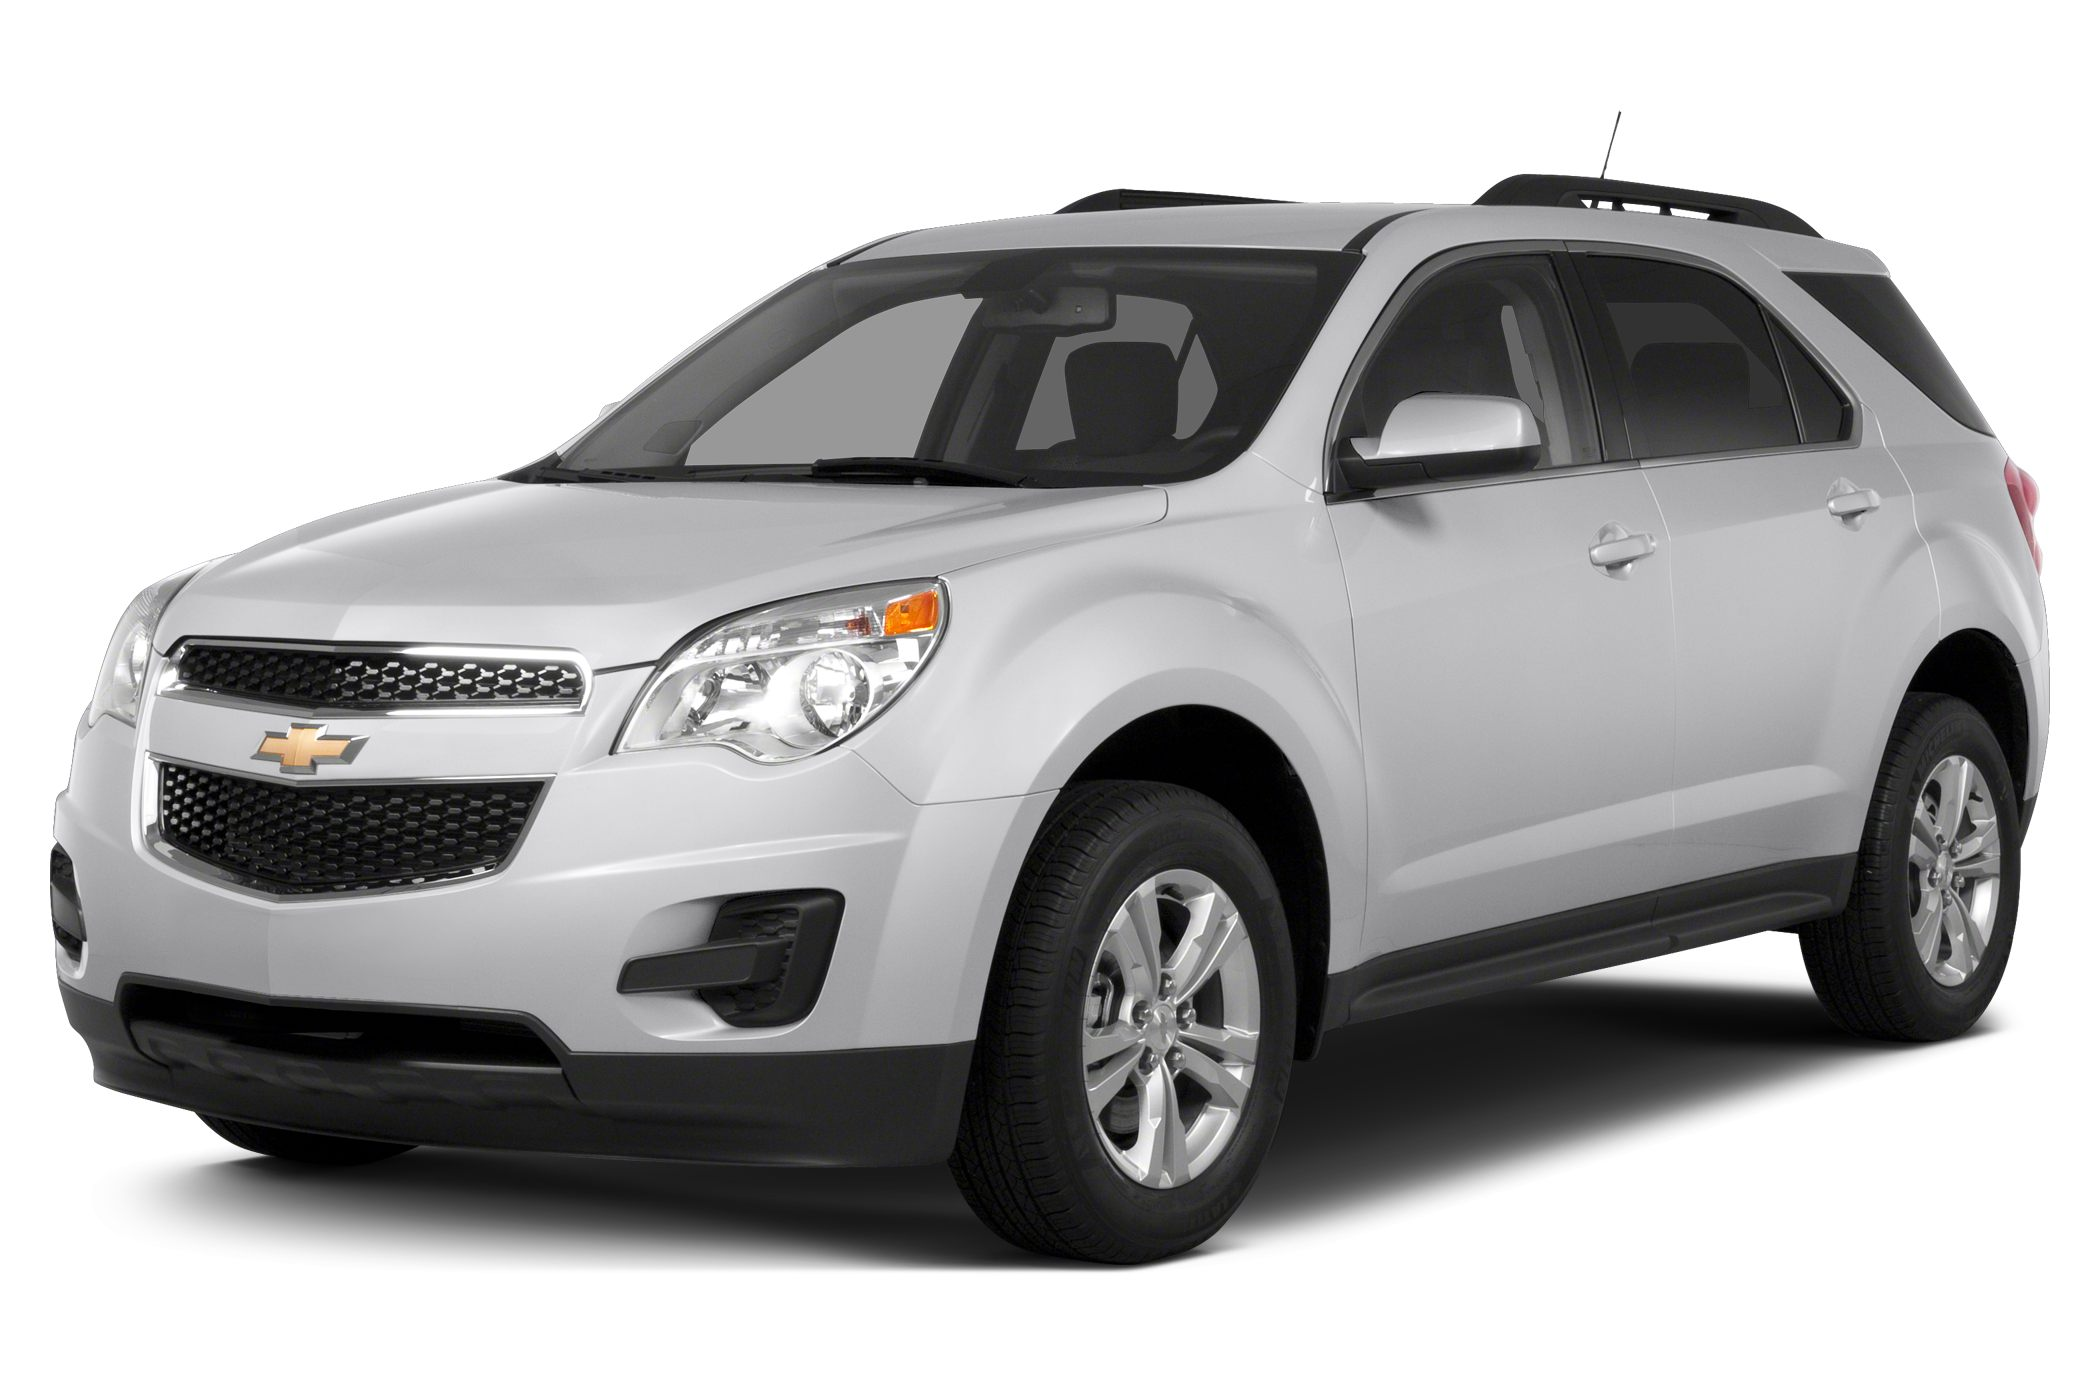 2015 Chevrolet Equinox 1LT SUV for sale in Neosho for $29,815 with 0 miles